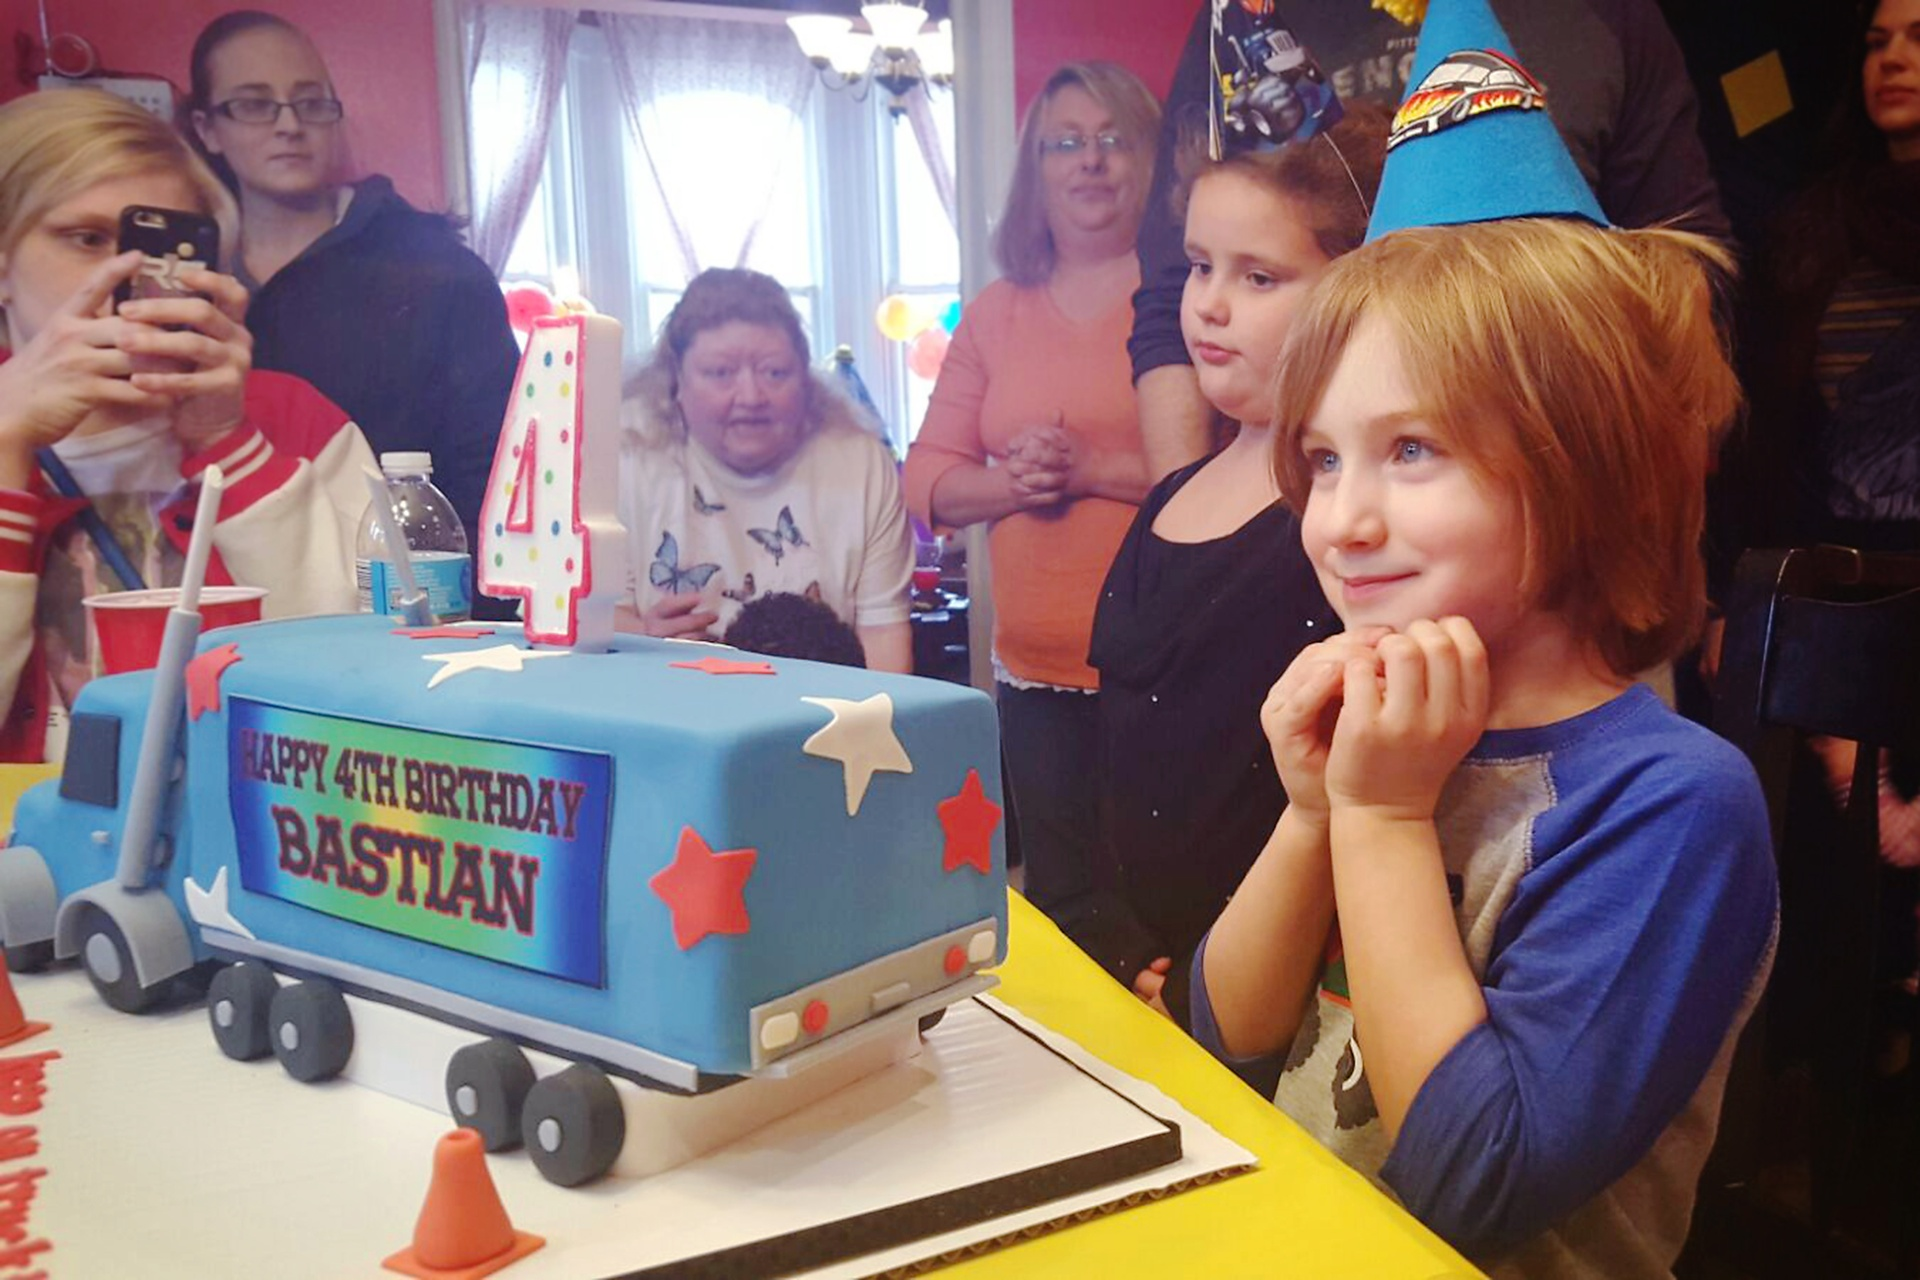 Bastian with his semi truck cake